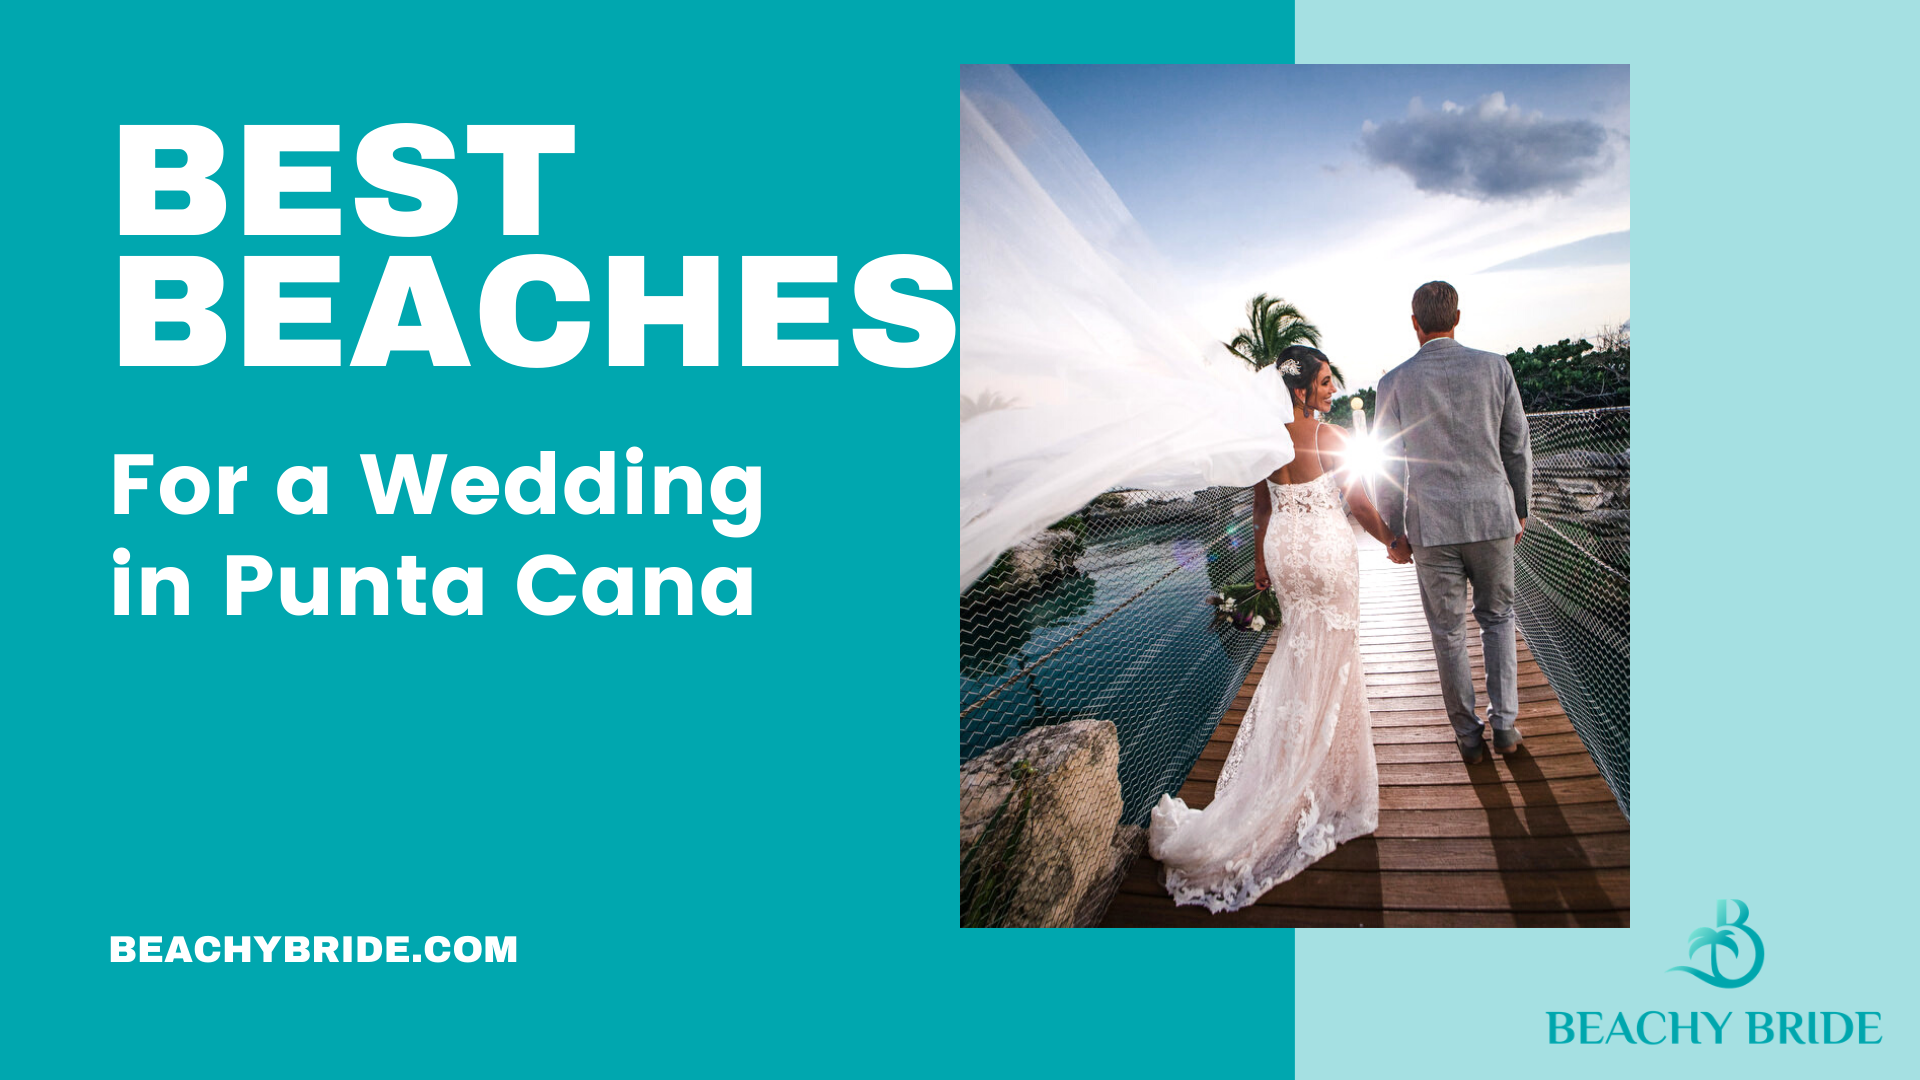 Best Beaches for a Destination Wedding In Punta Cana. 'image'